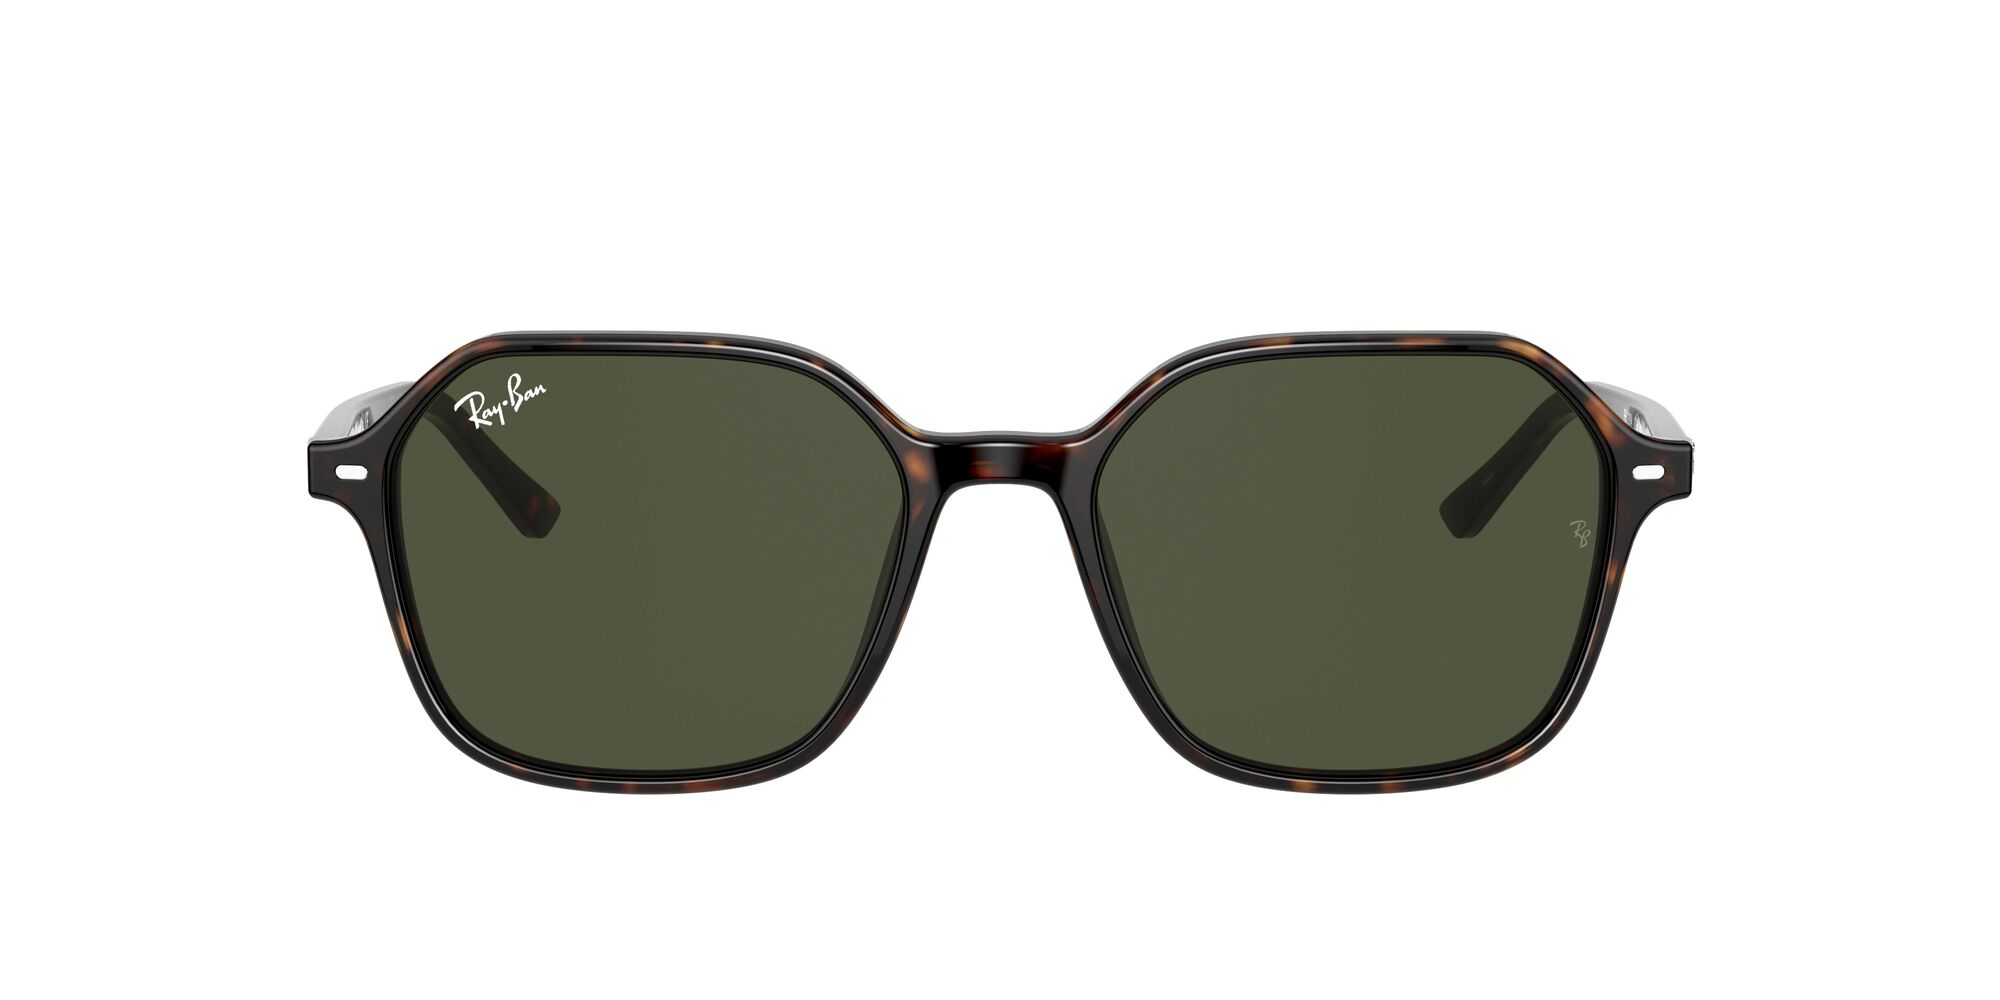 Front Ray-Ban Ray-Ban 0RB2194 902/31 51/18 Bruin/Groen